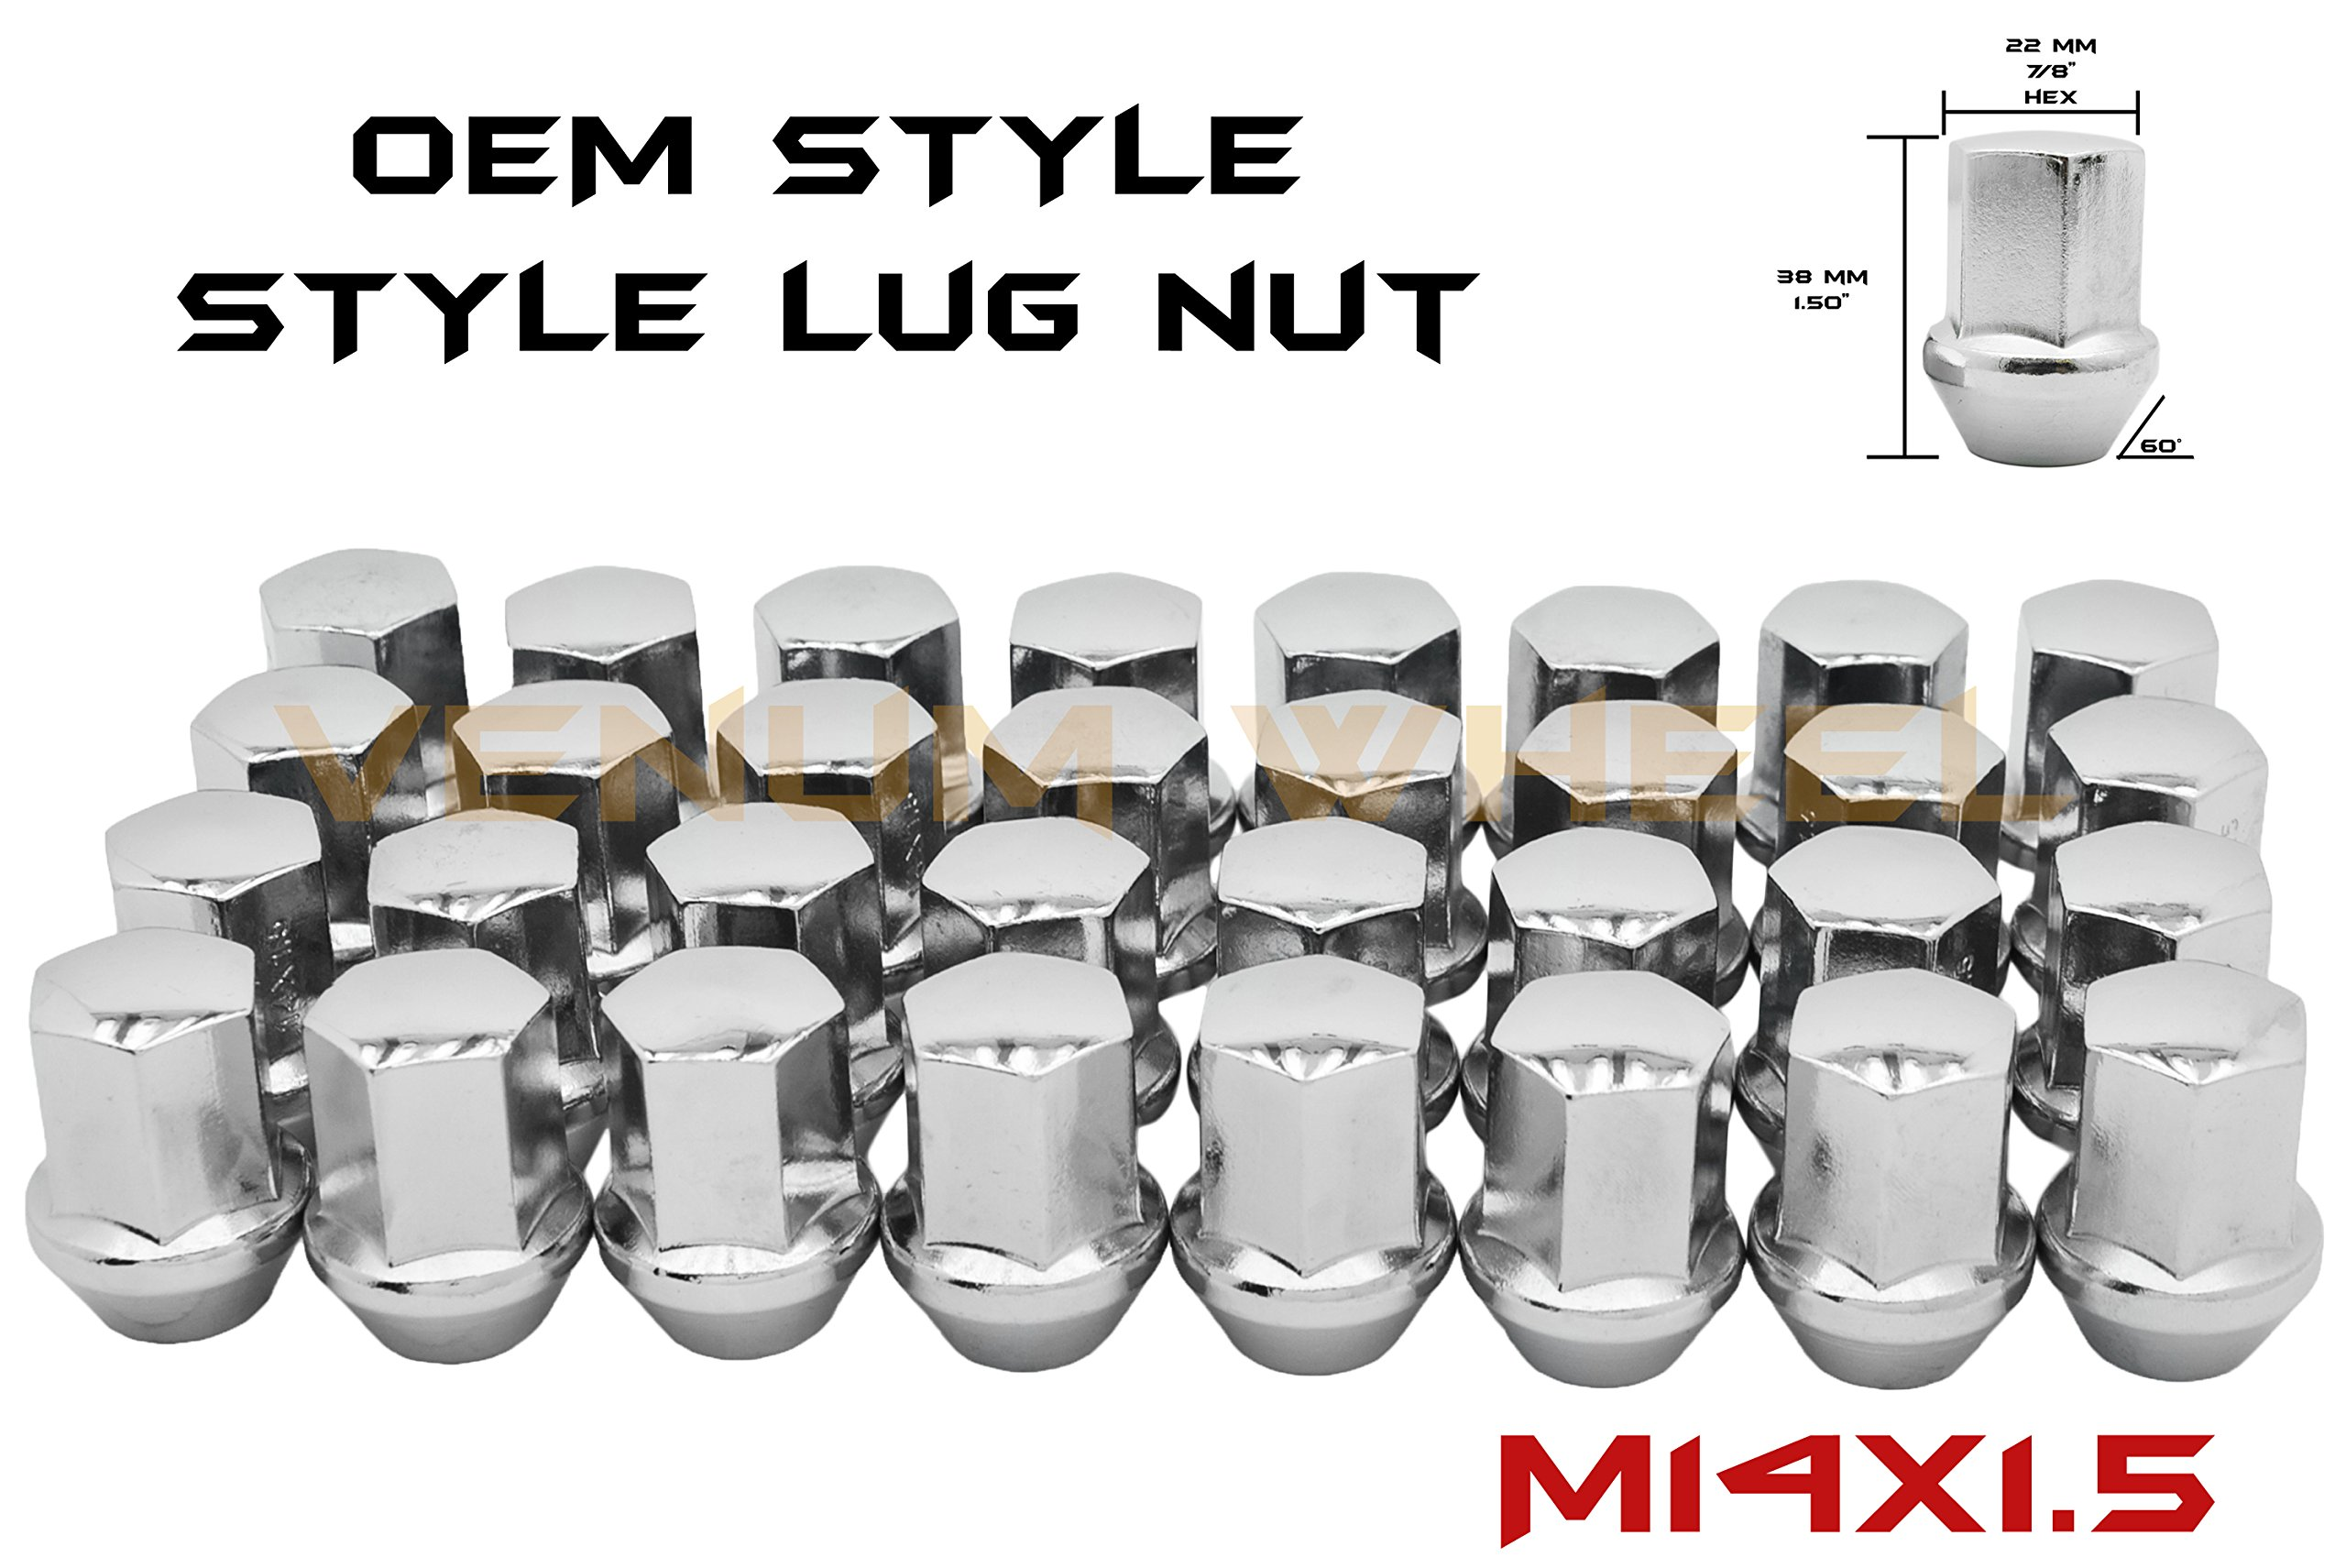 Venum wheel accessories 24 Pc Chrome OEM Style Factory Lug Nuts 2015-2018 F-150 Raptor 14x1.5 Thread Pitch | Fits Expedition & Navigator